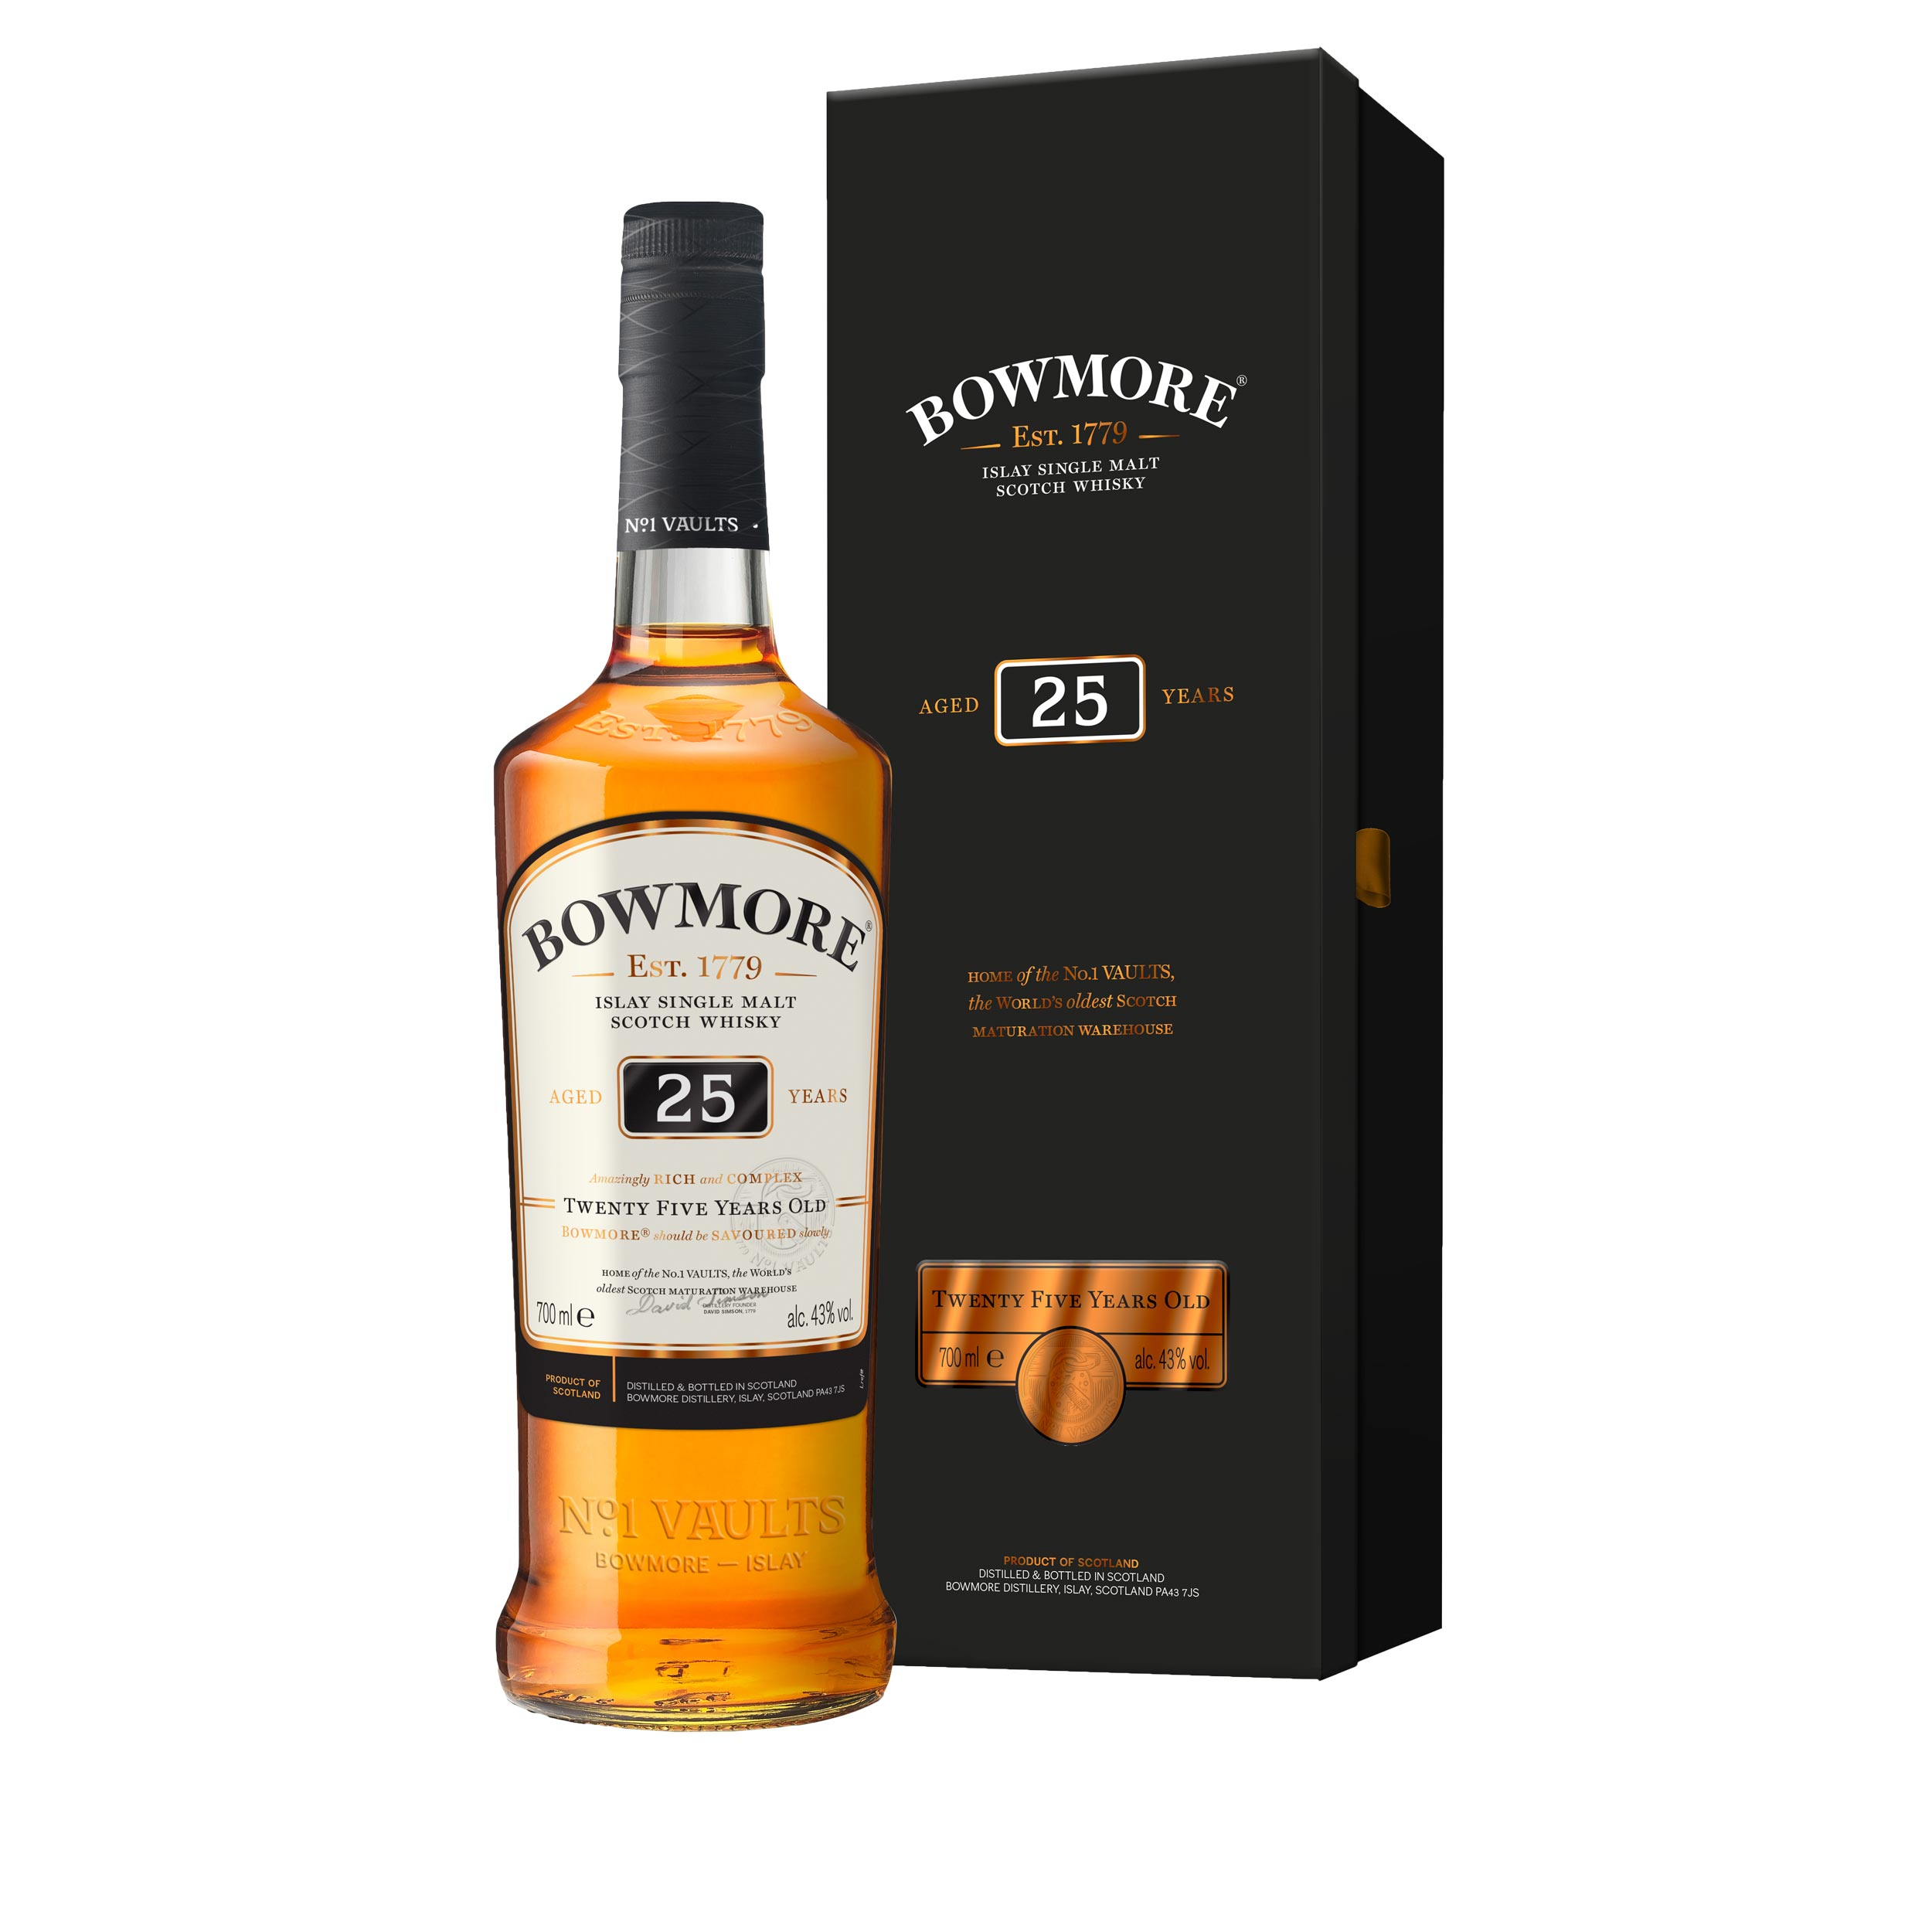 Bowmore 25 Year Old Islay Single Malt Scotch Whisky 70cl